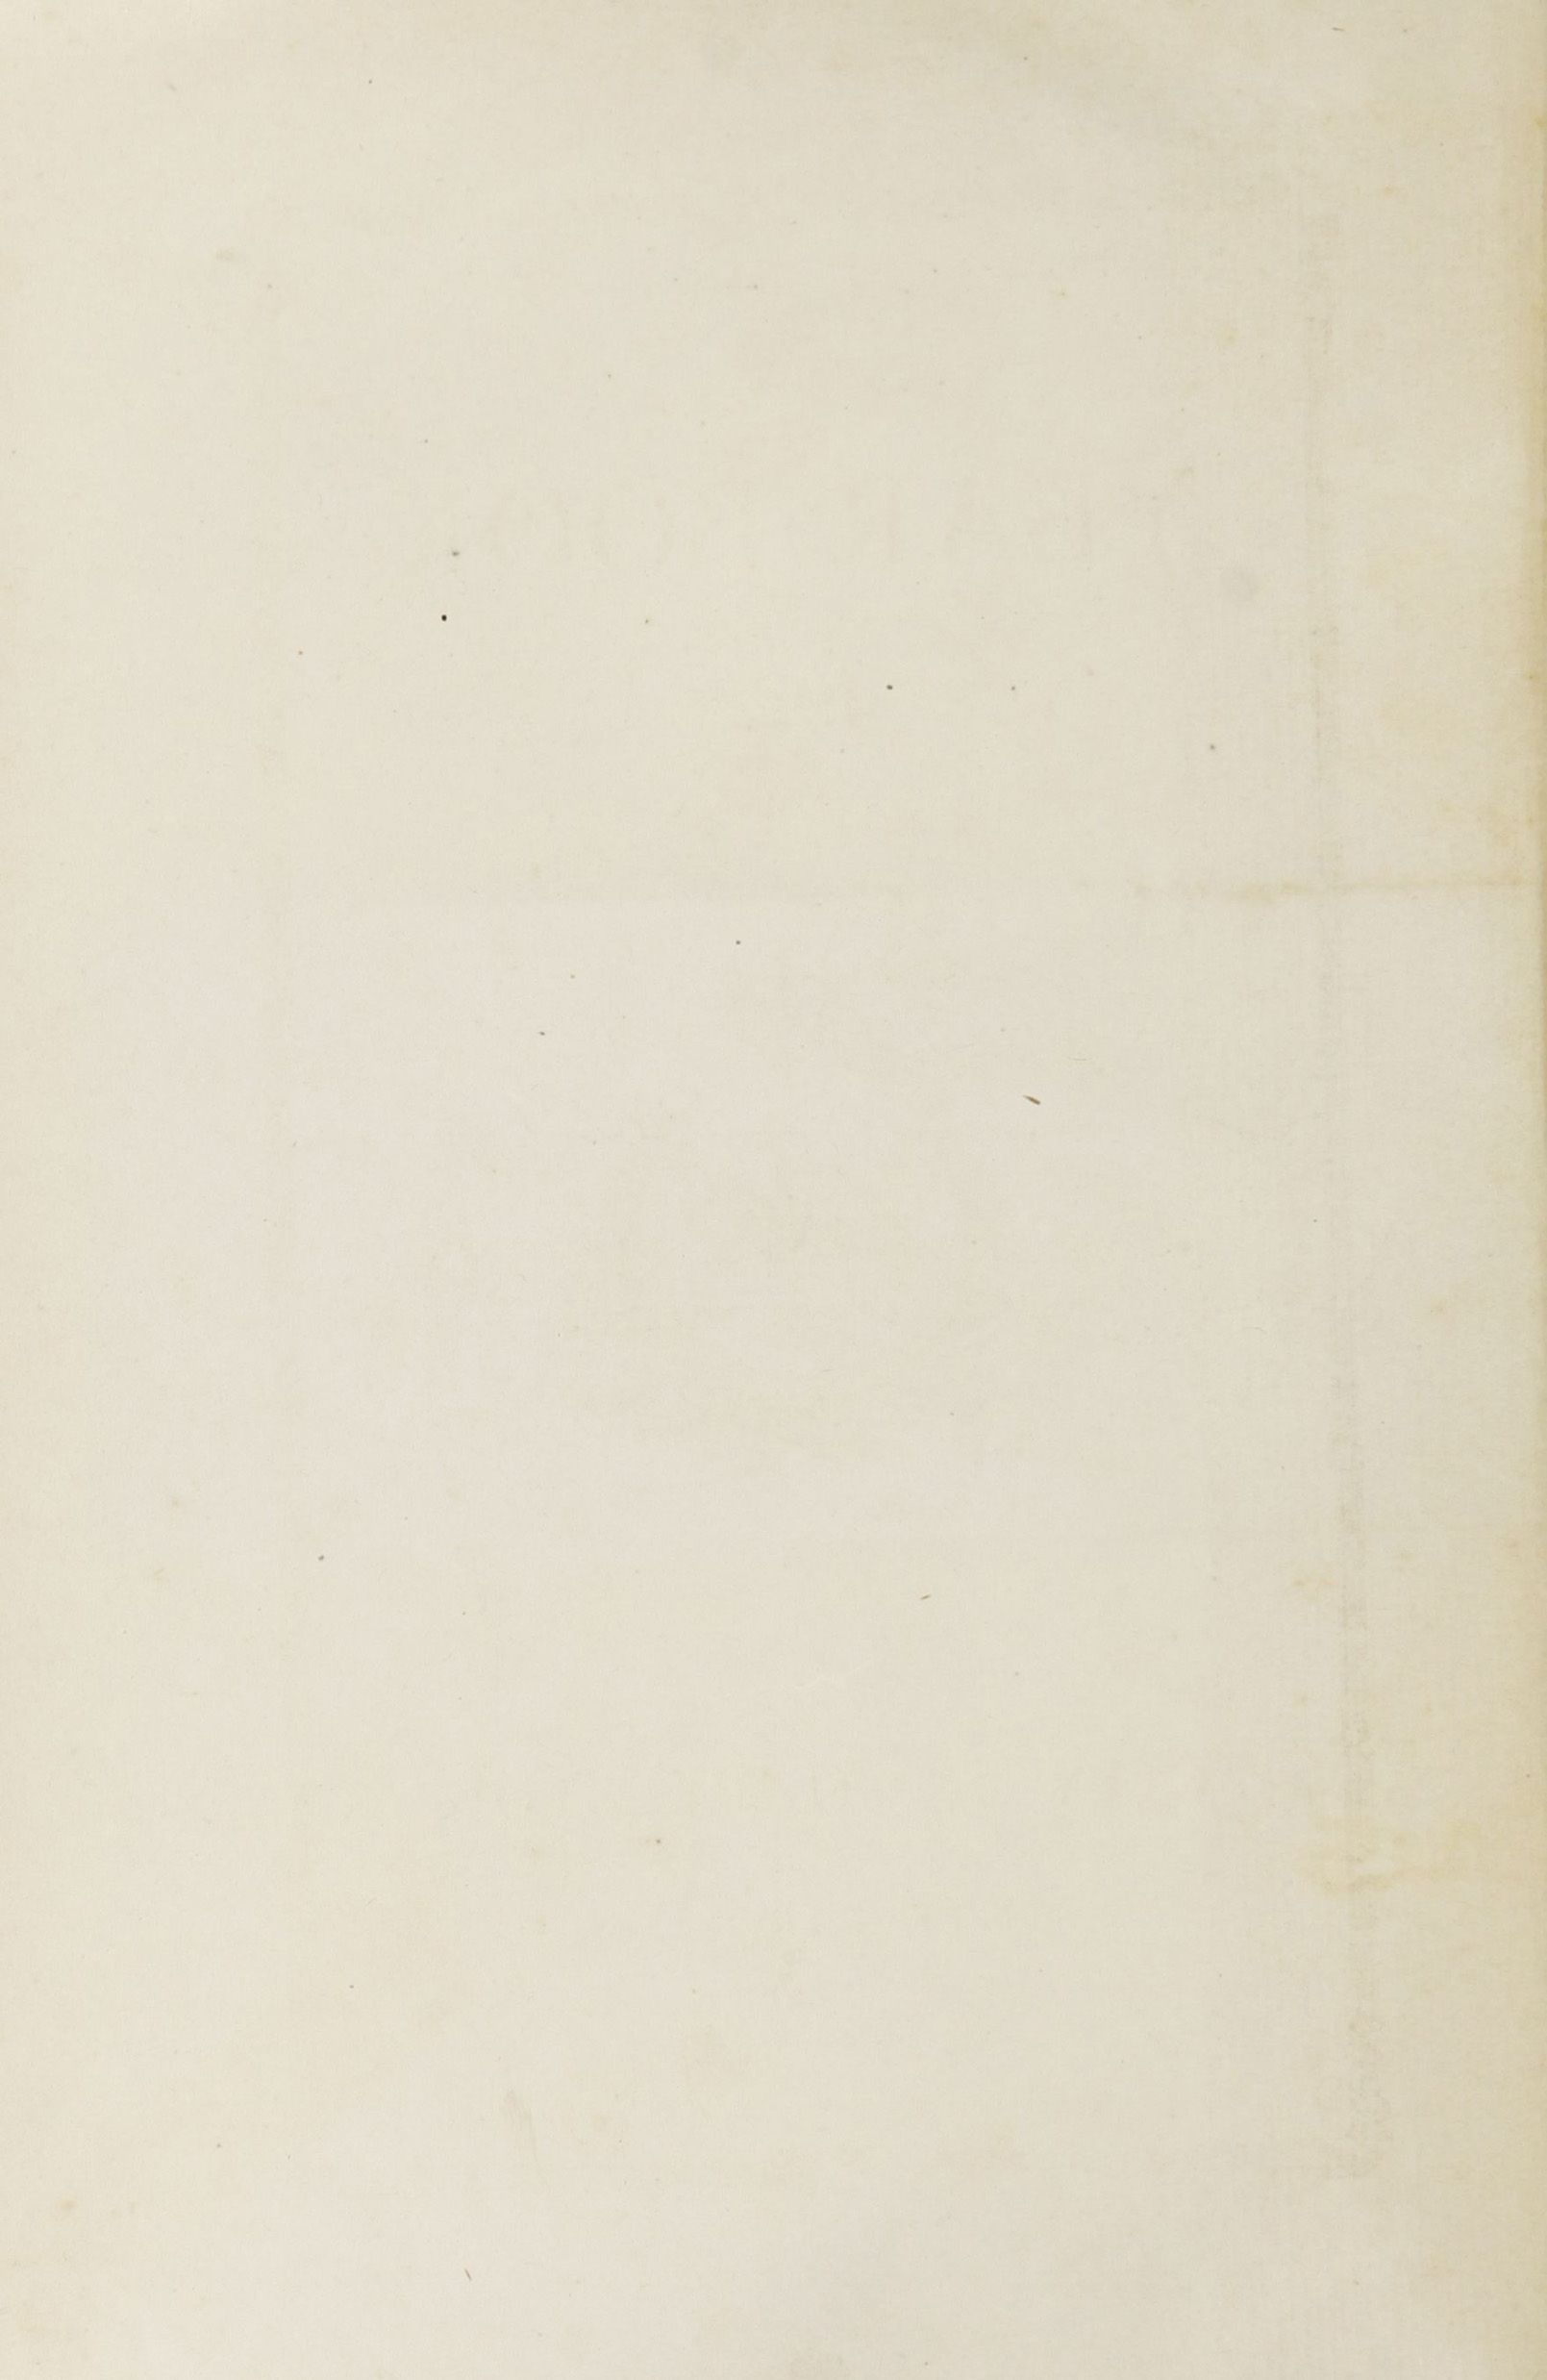 Charleston Yearbook, 1922, blank page